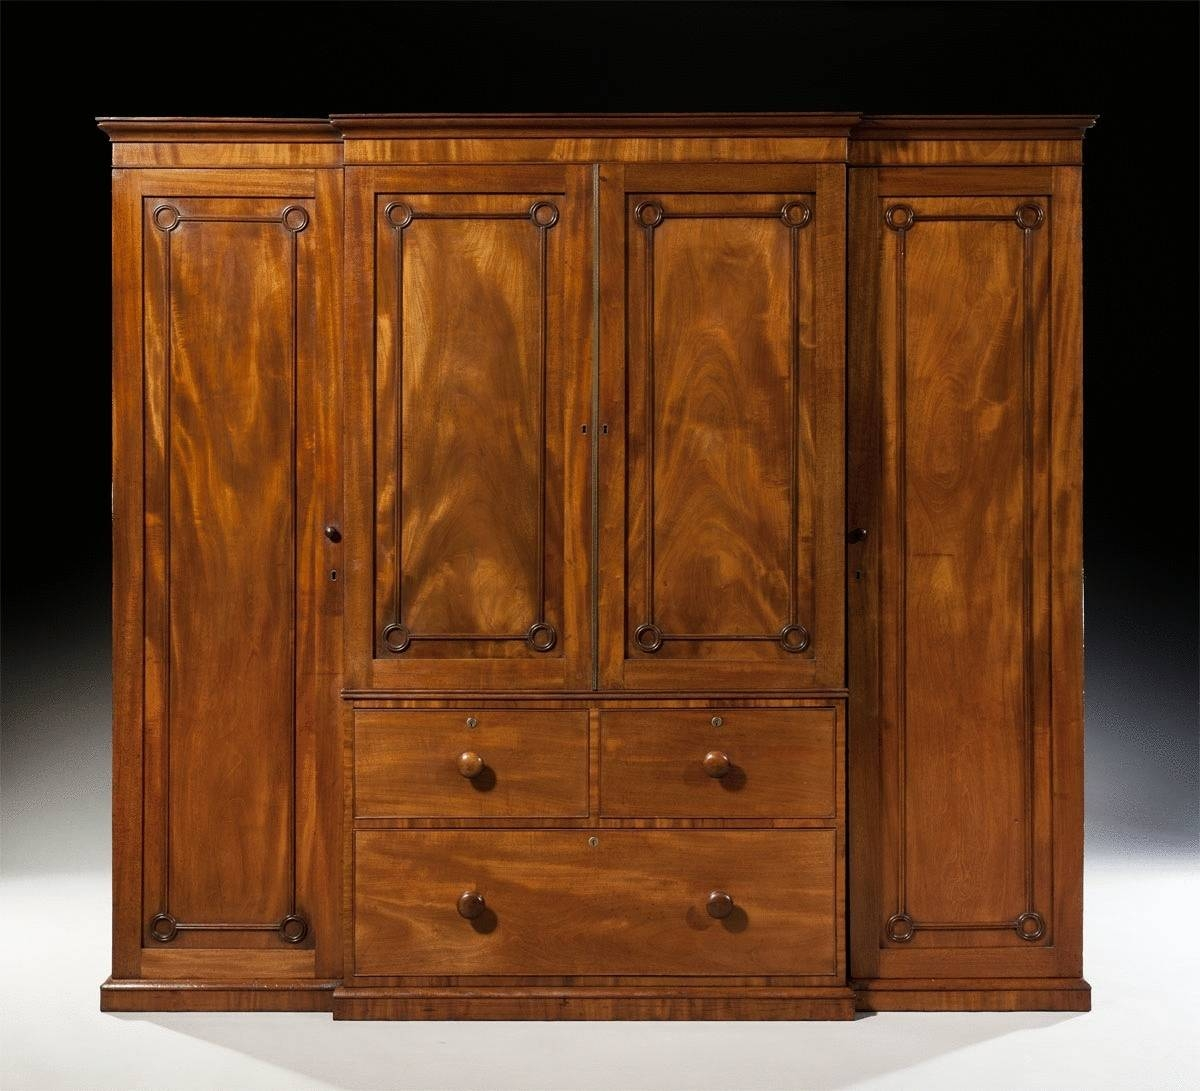 Small Antique Regency Breakfront Mahogany Gentleman's Wardrobe (C intended for Antique Breakfront Wardrobe (Image 22 of 30)